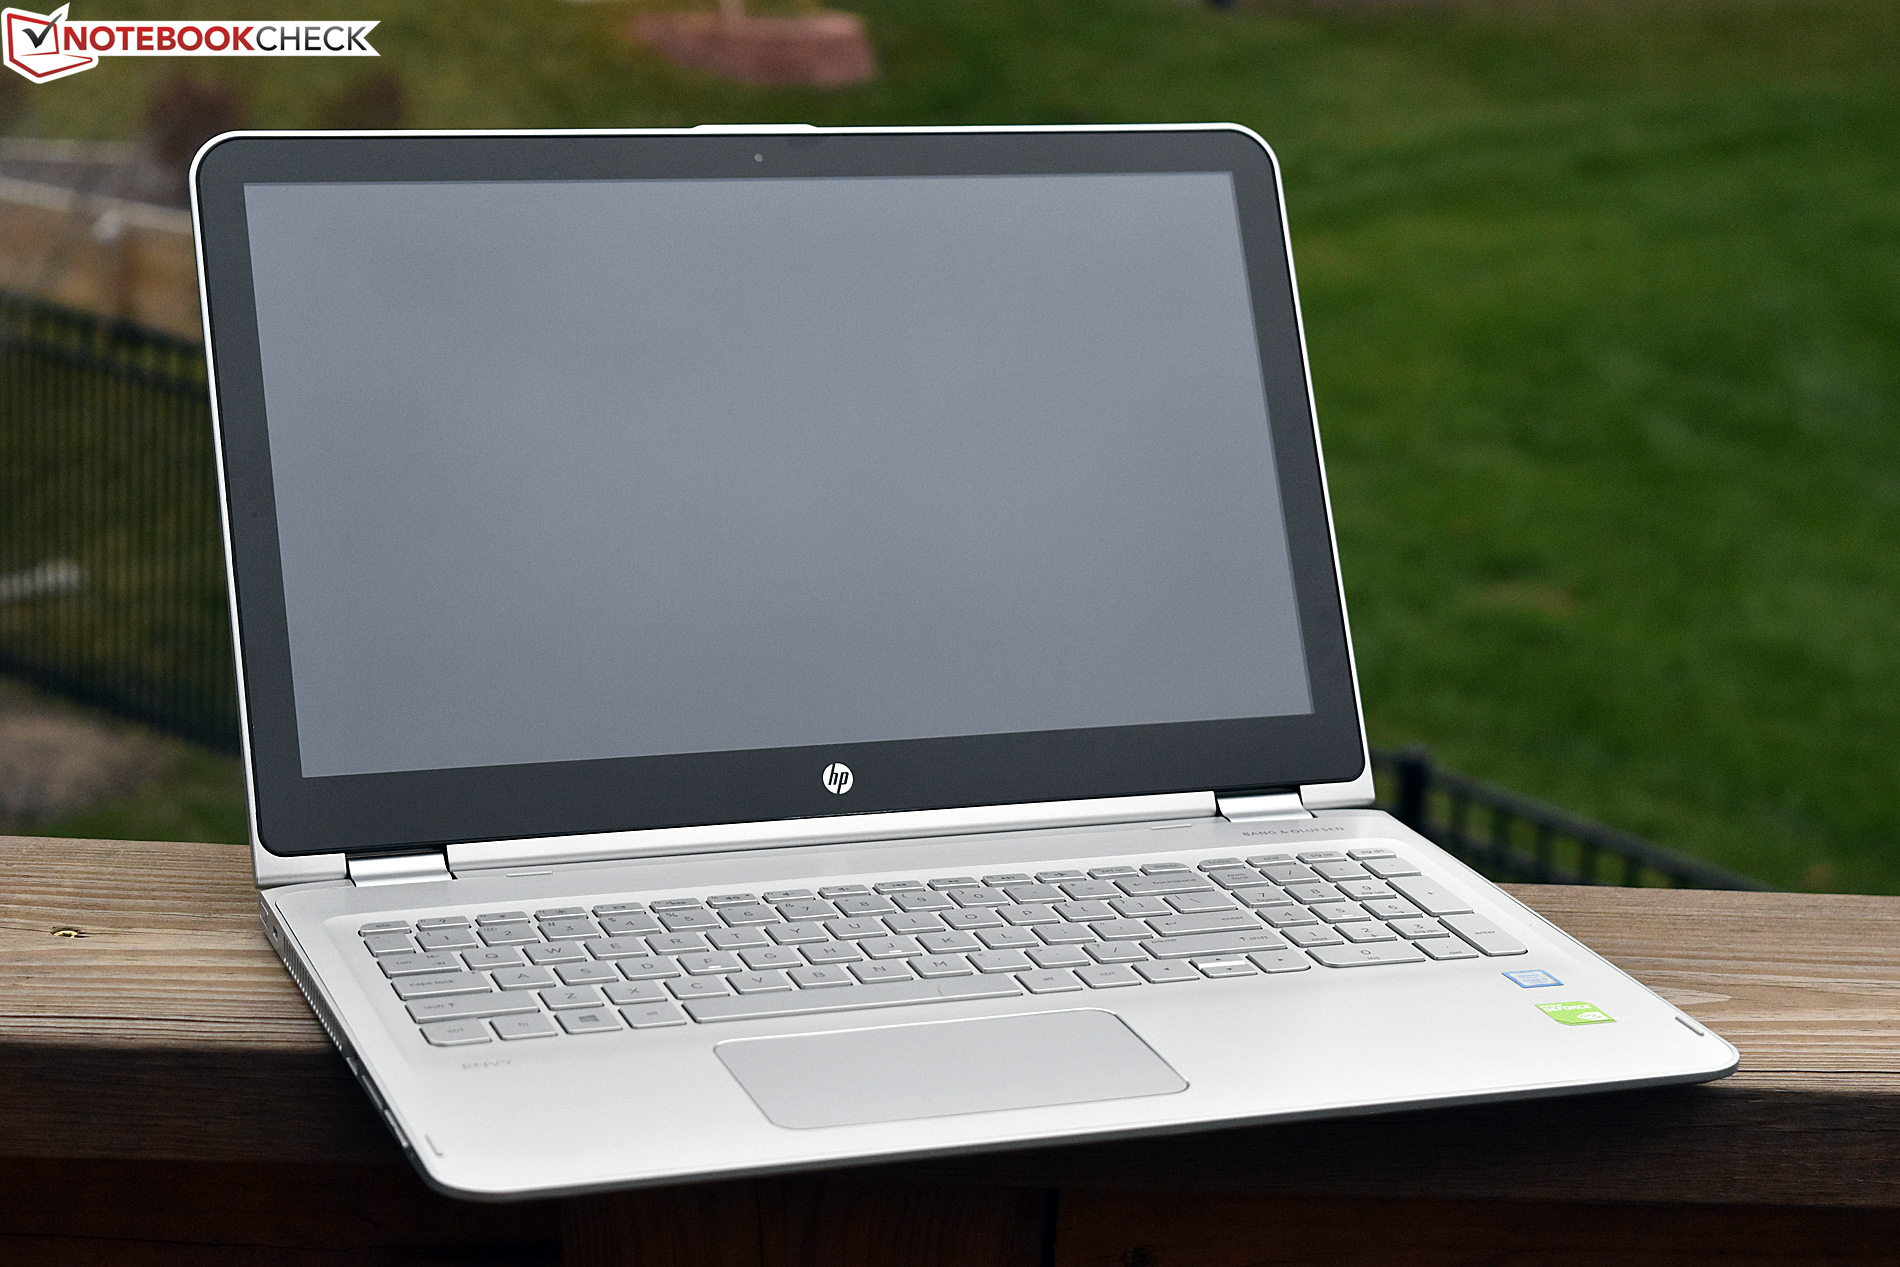 HP ENVY 14T-2000 CTO NOTEBOOK RENESAS USB CONTROLLER WINDOWS VISTA DRIVER DOWNLOAD